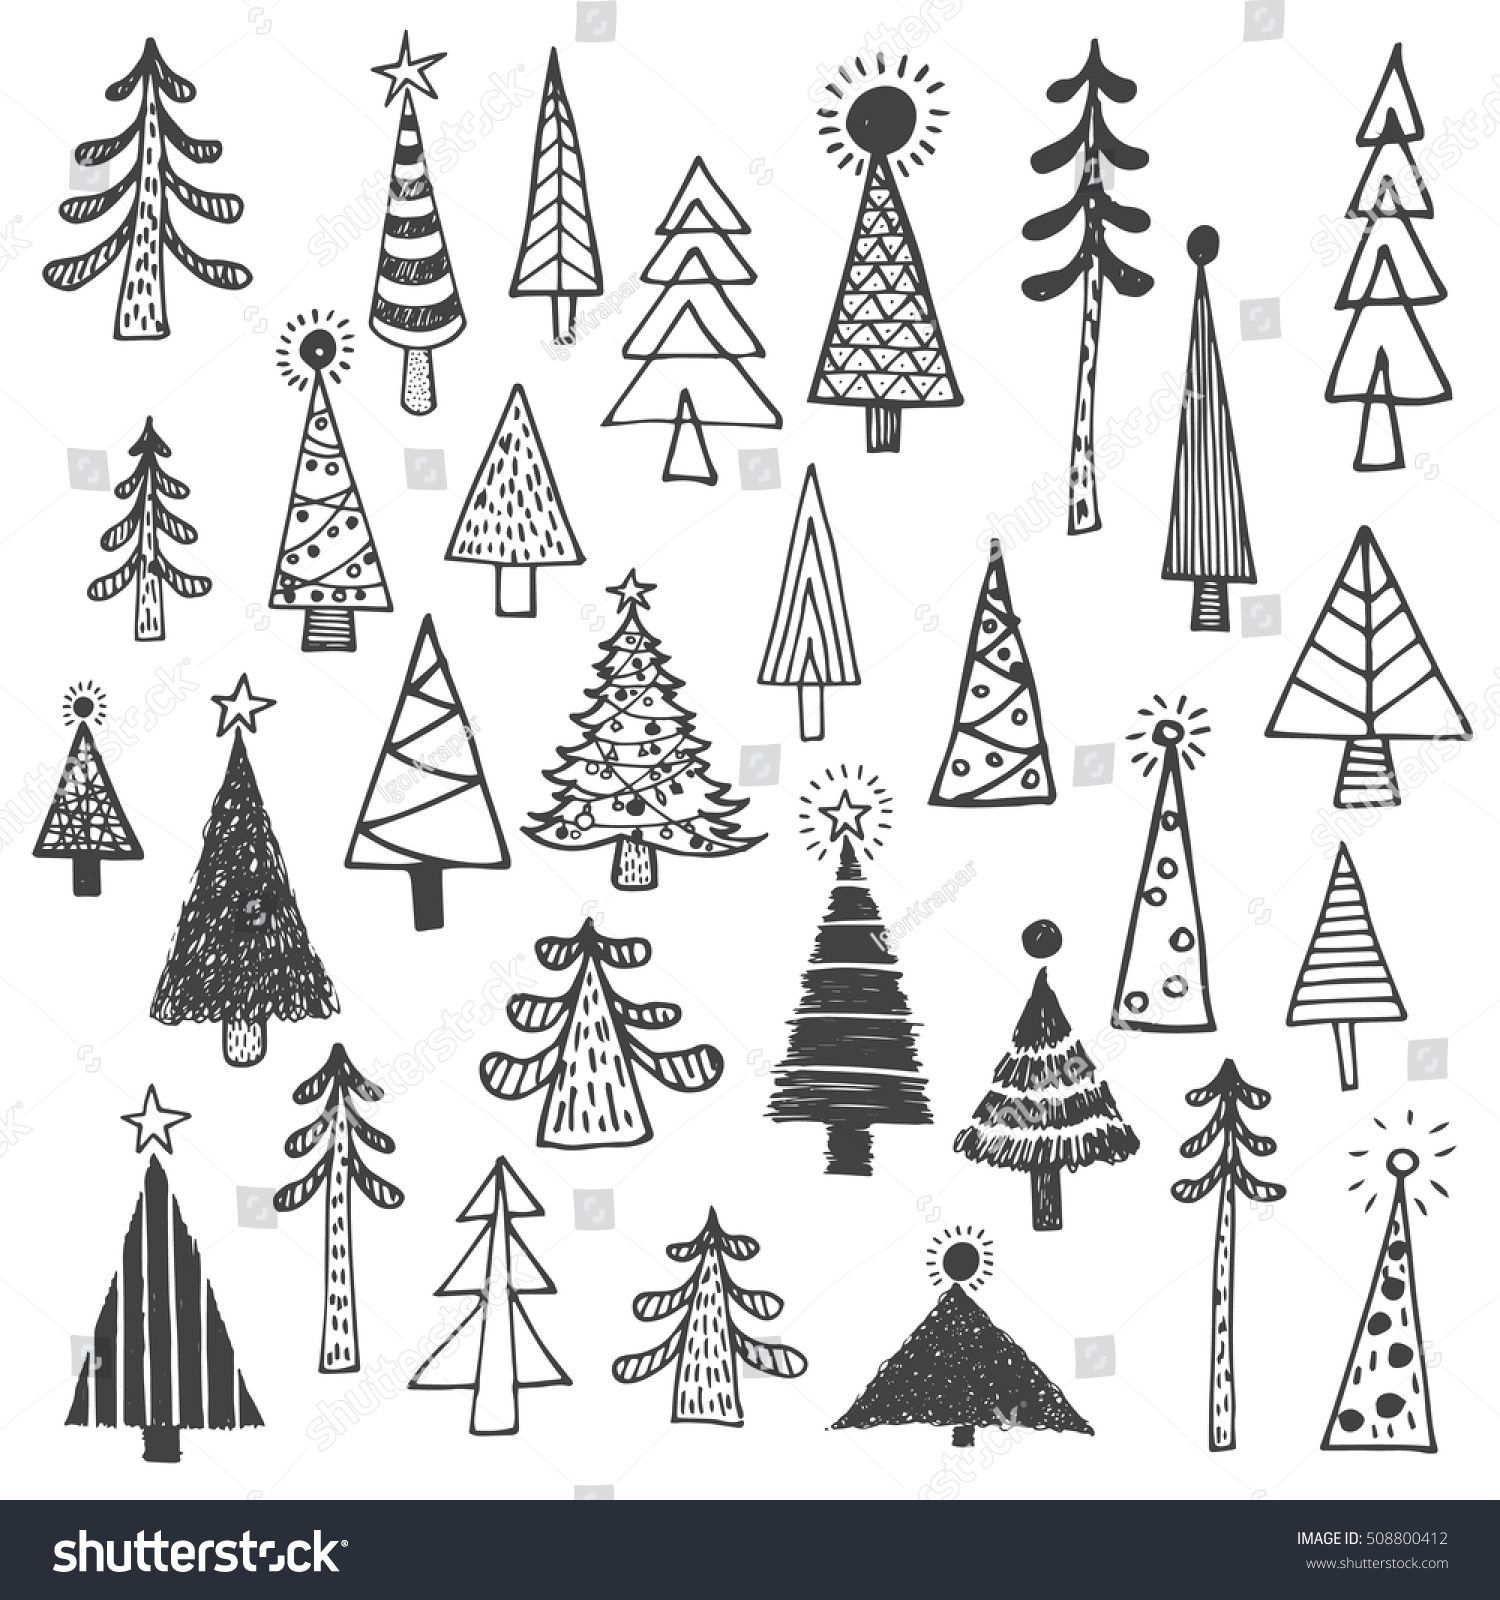 Stock Vector Royalty Free On Fir Simple Drawing Set508800412 Drawing Fir Free Royal In 2020 Christmas Tree Drawing Tree Drawing Simple Christmas Tree Drawing Easy